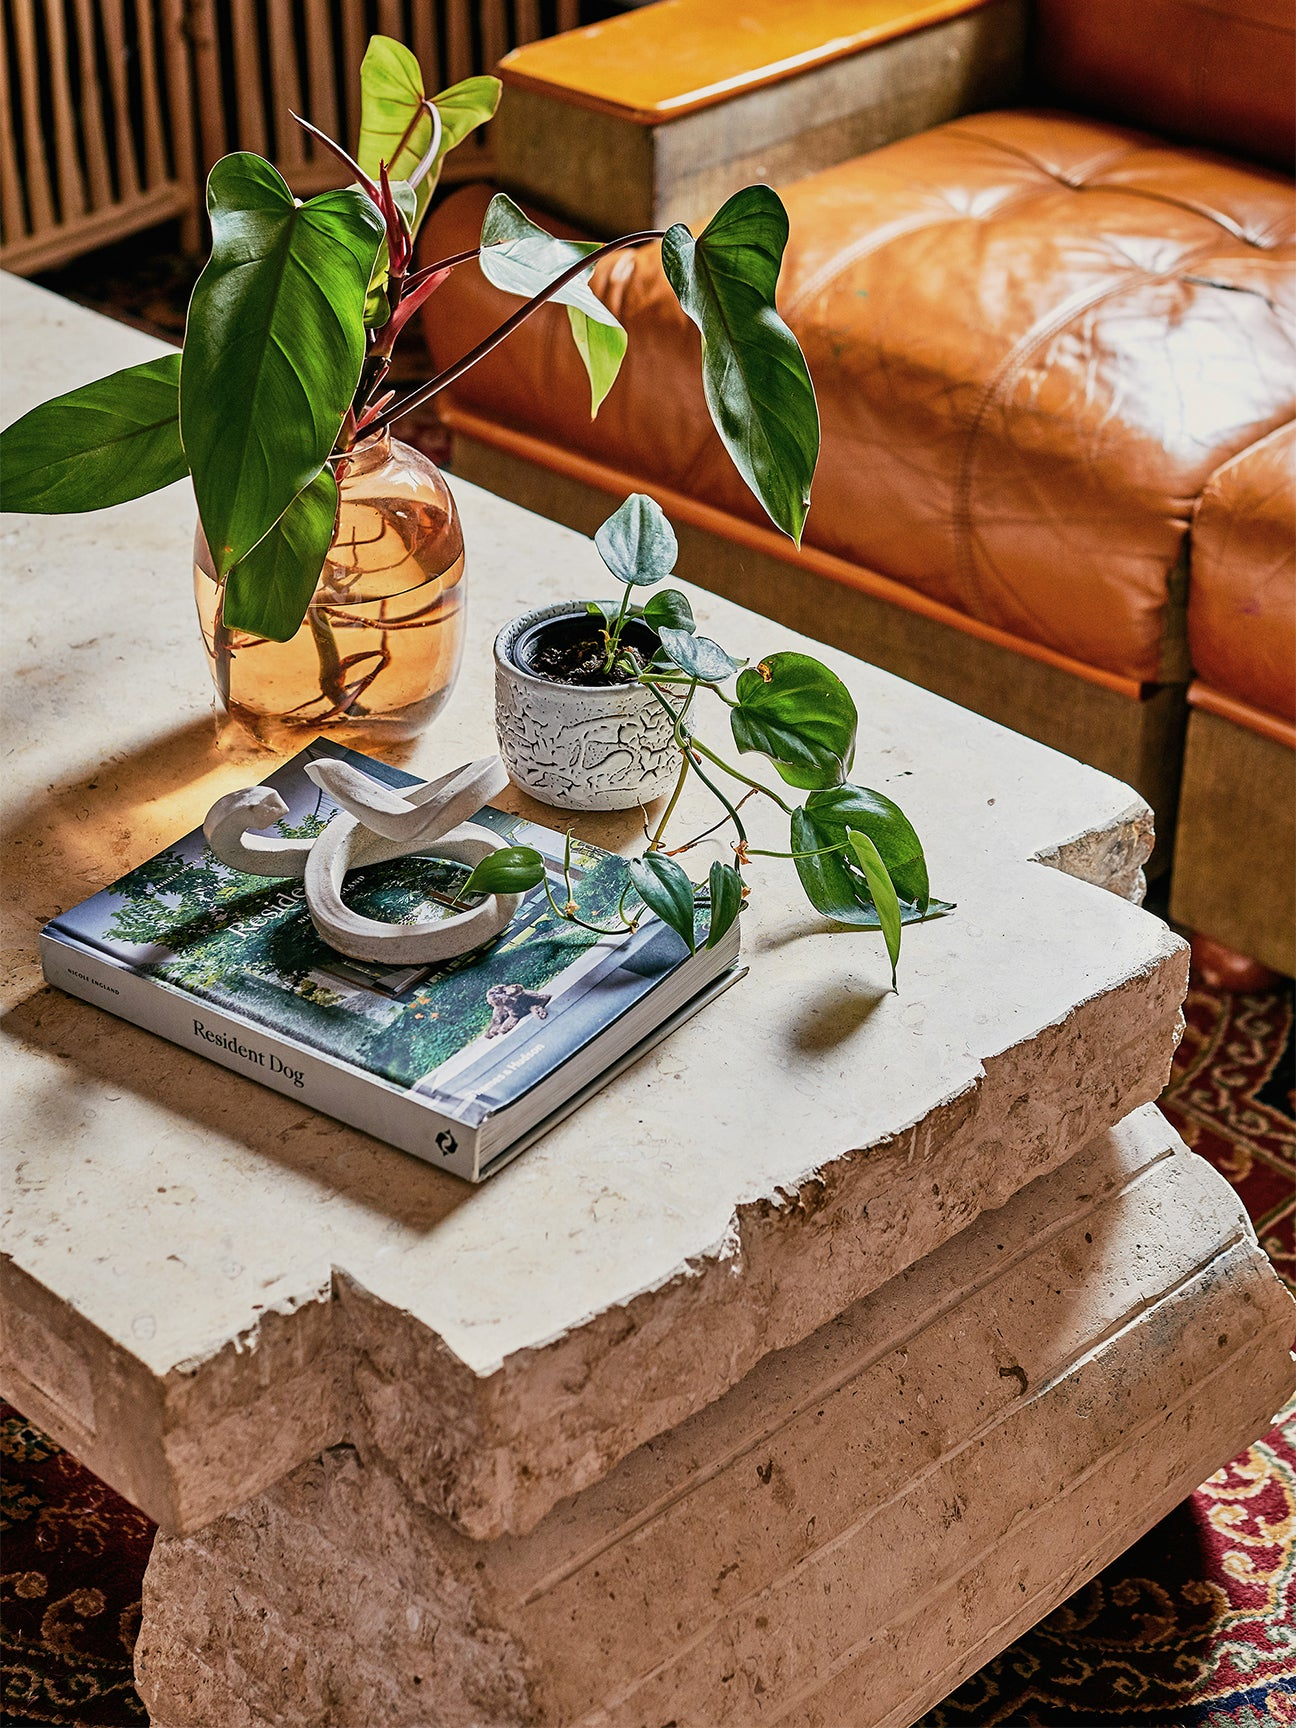 Travertine coffee table with books and plants